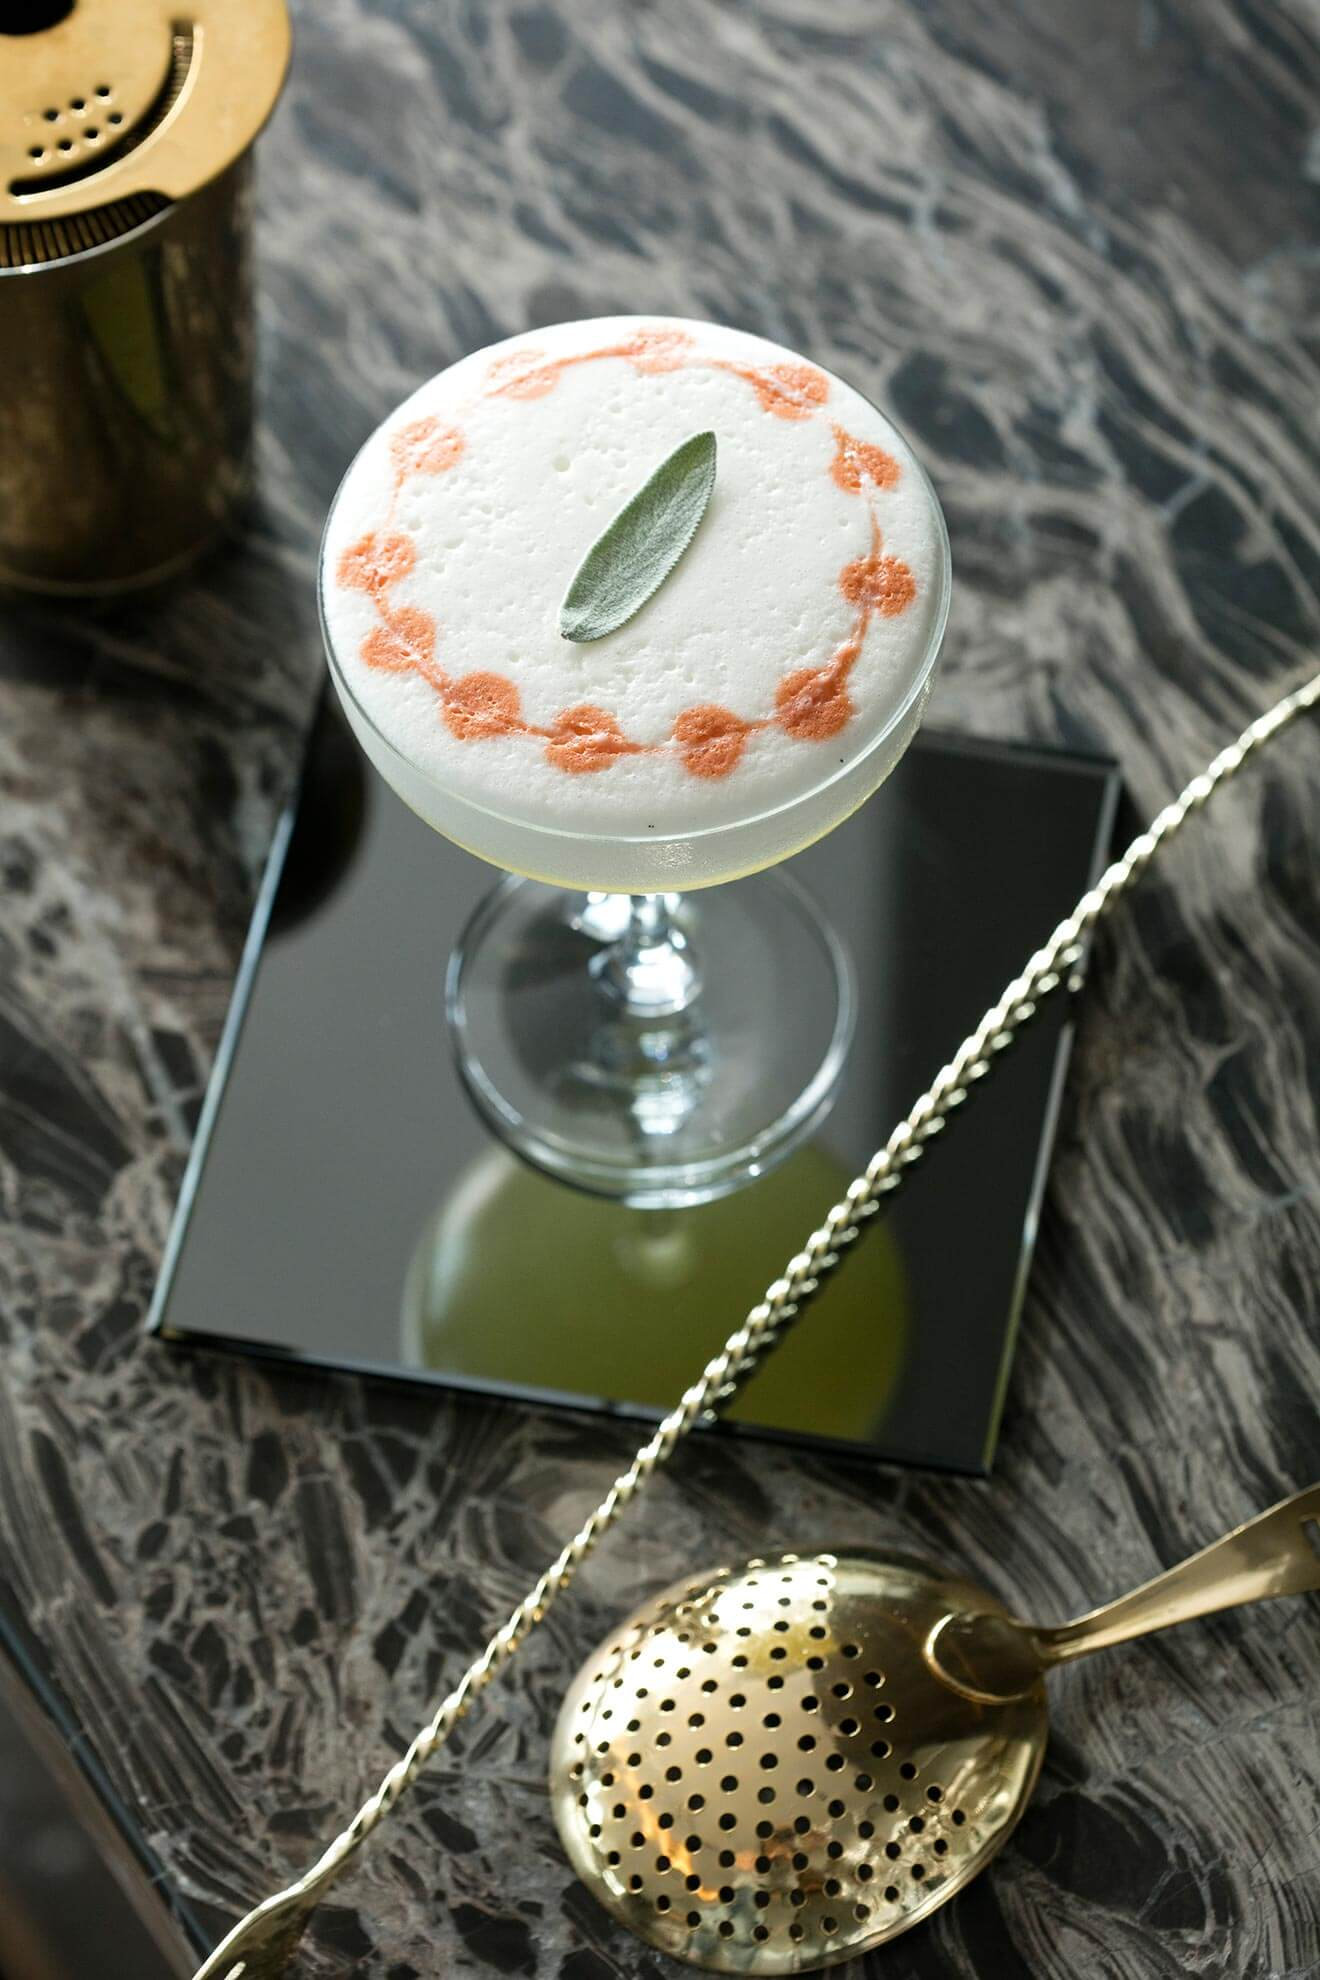 Sage Advice, cocktail with garnish on small plate